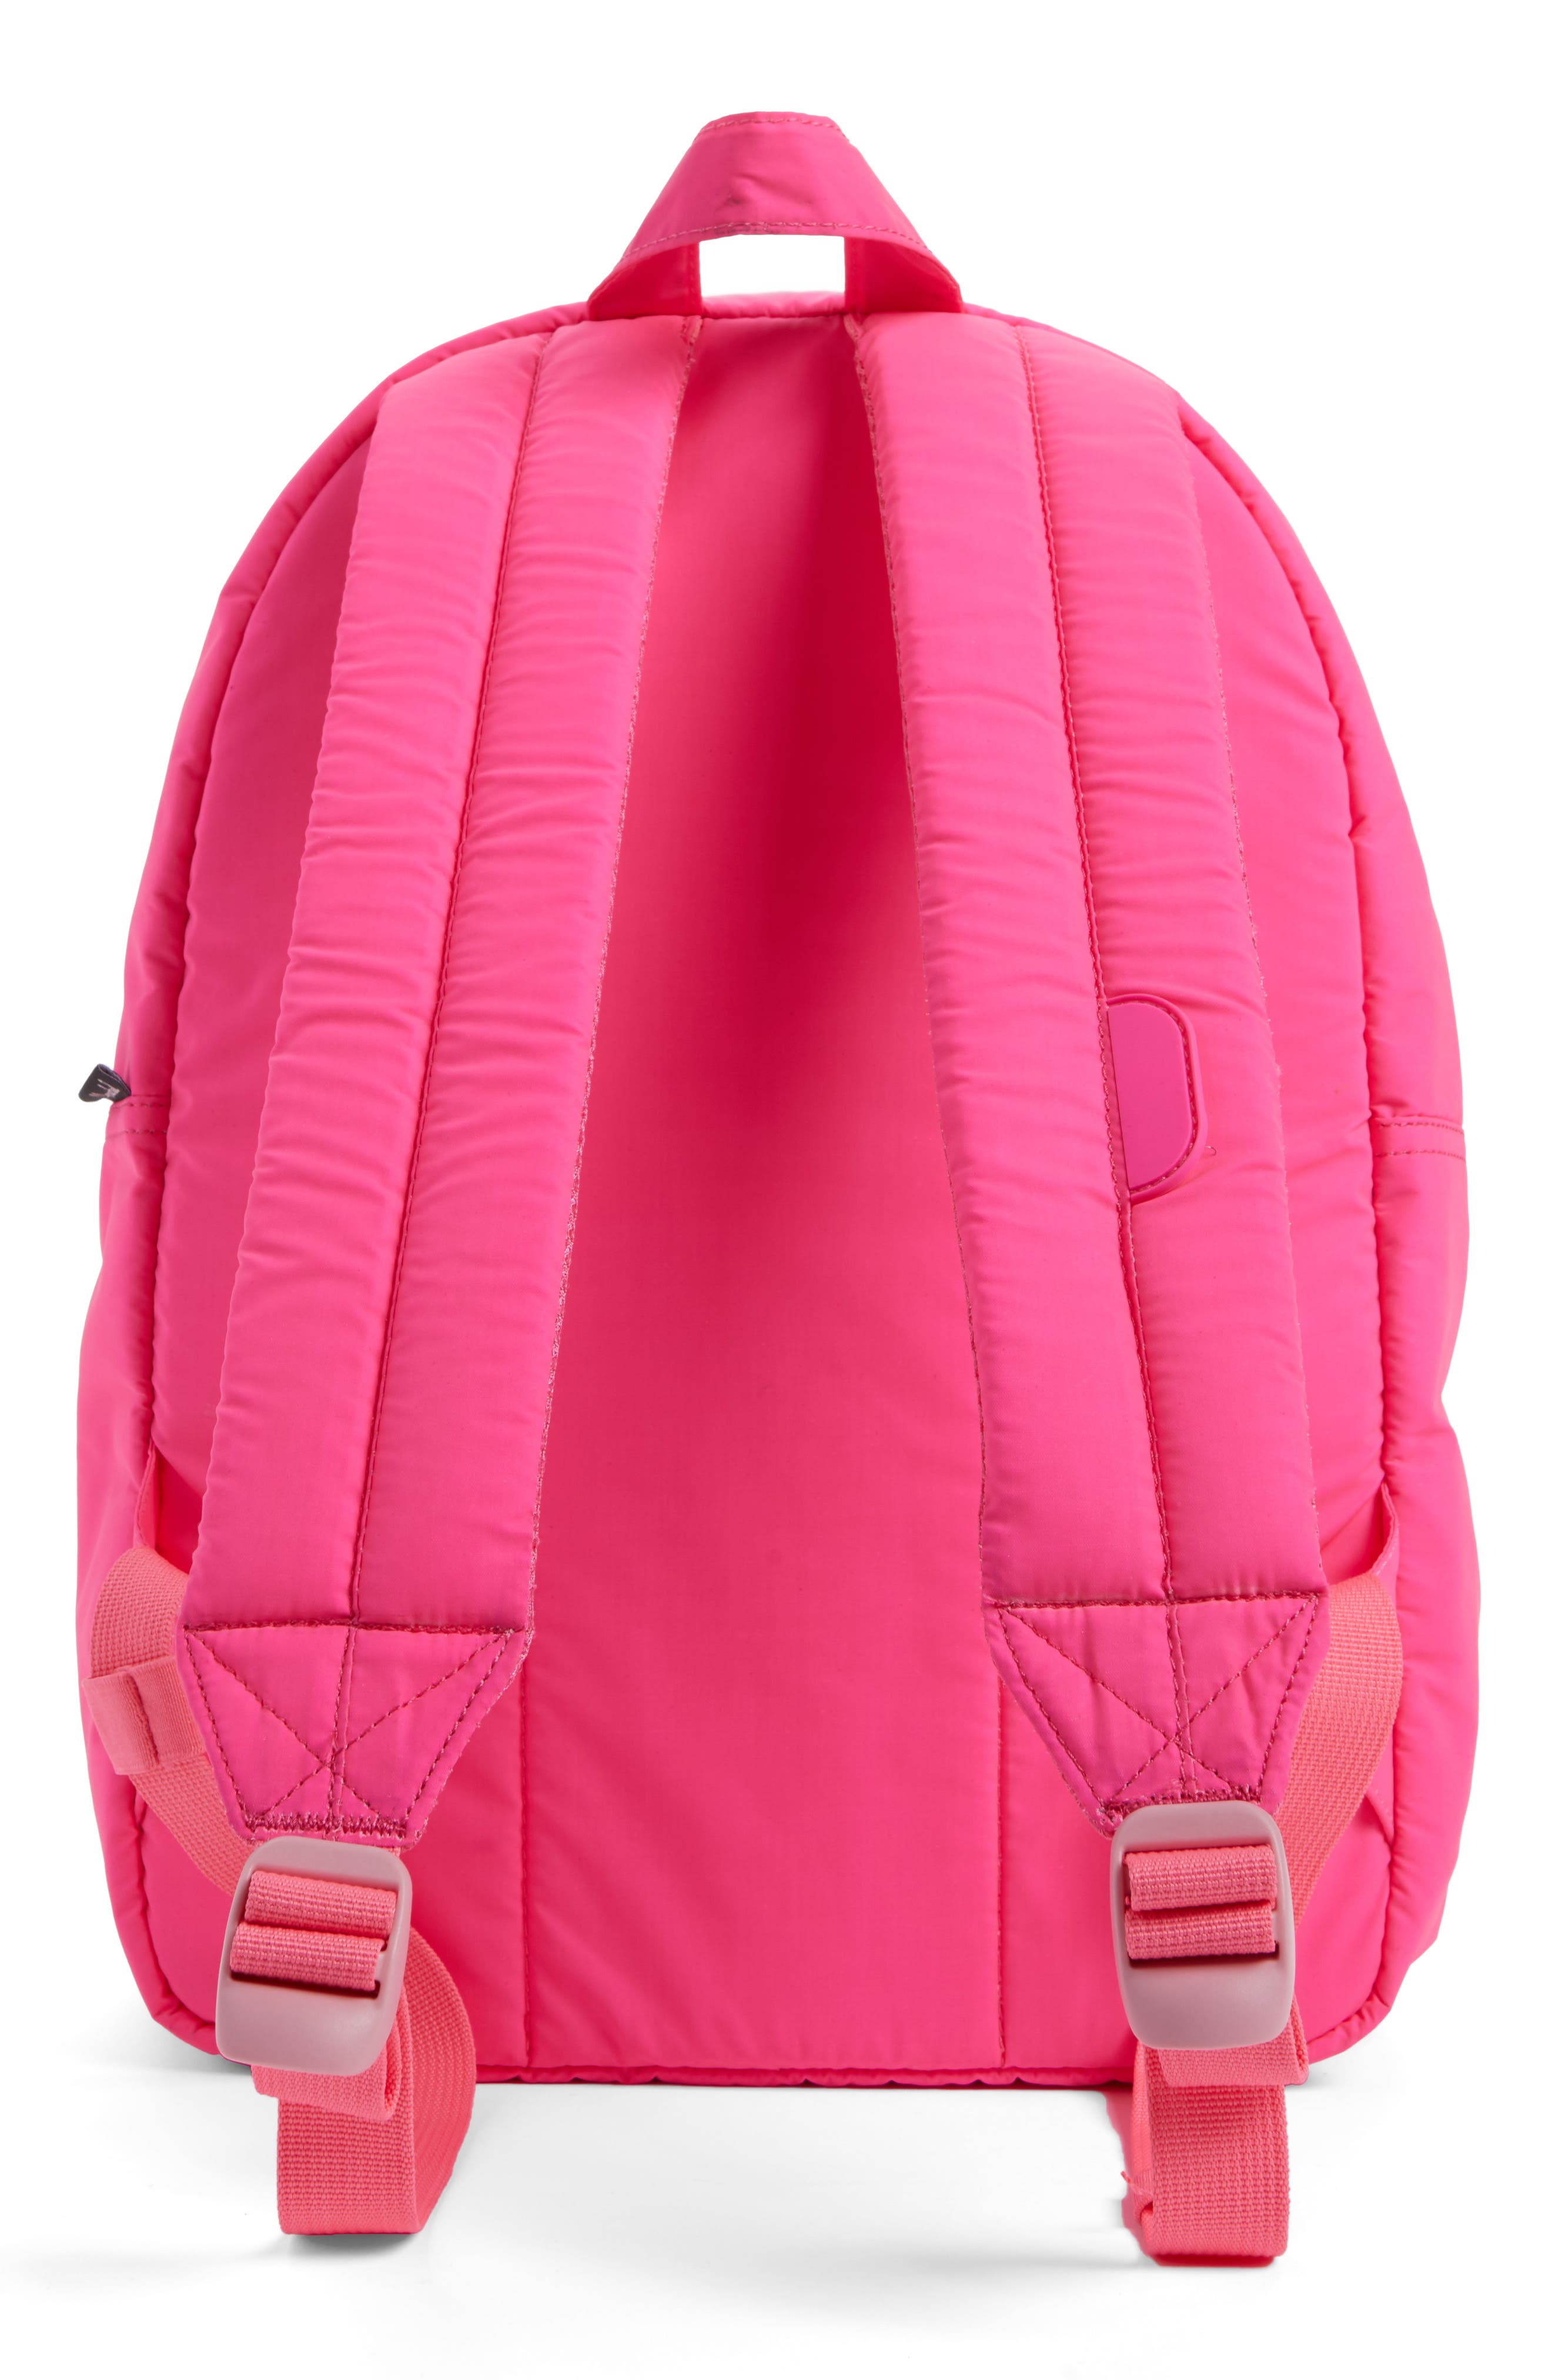 Heritage Backpack,                             Alternate thumbnail 2, color,                             650